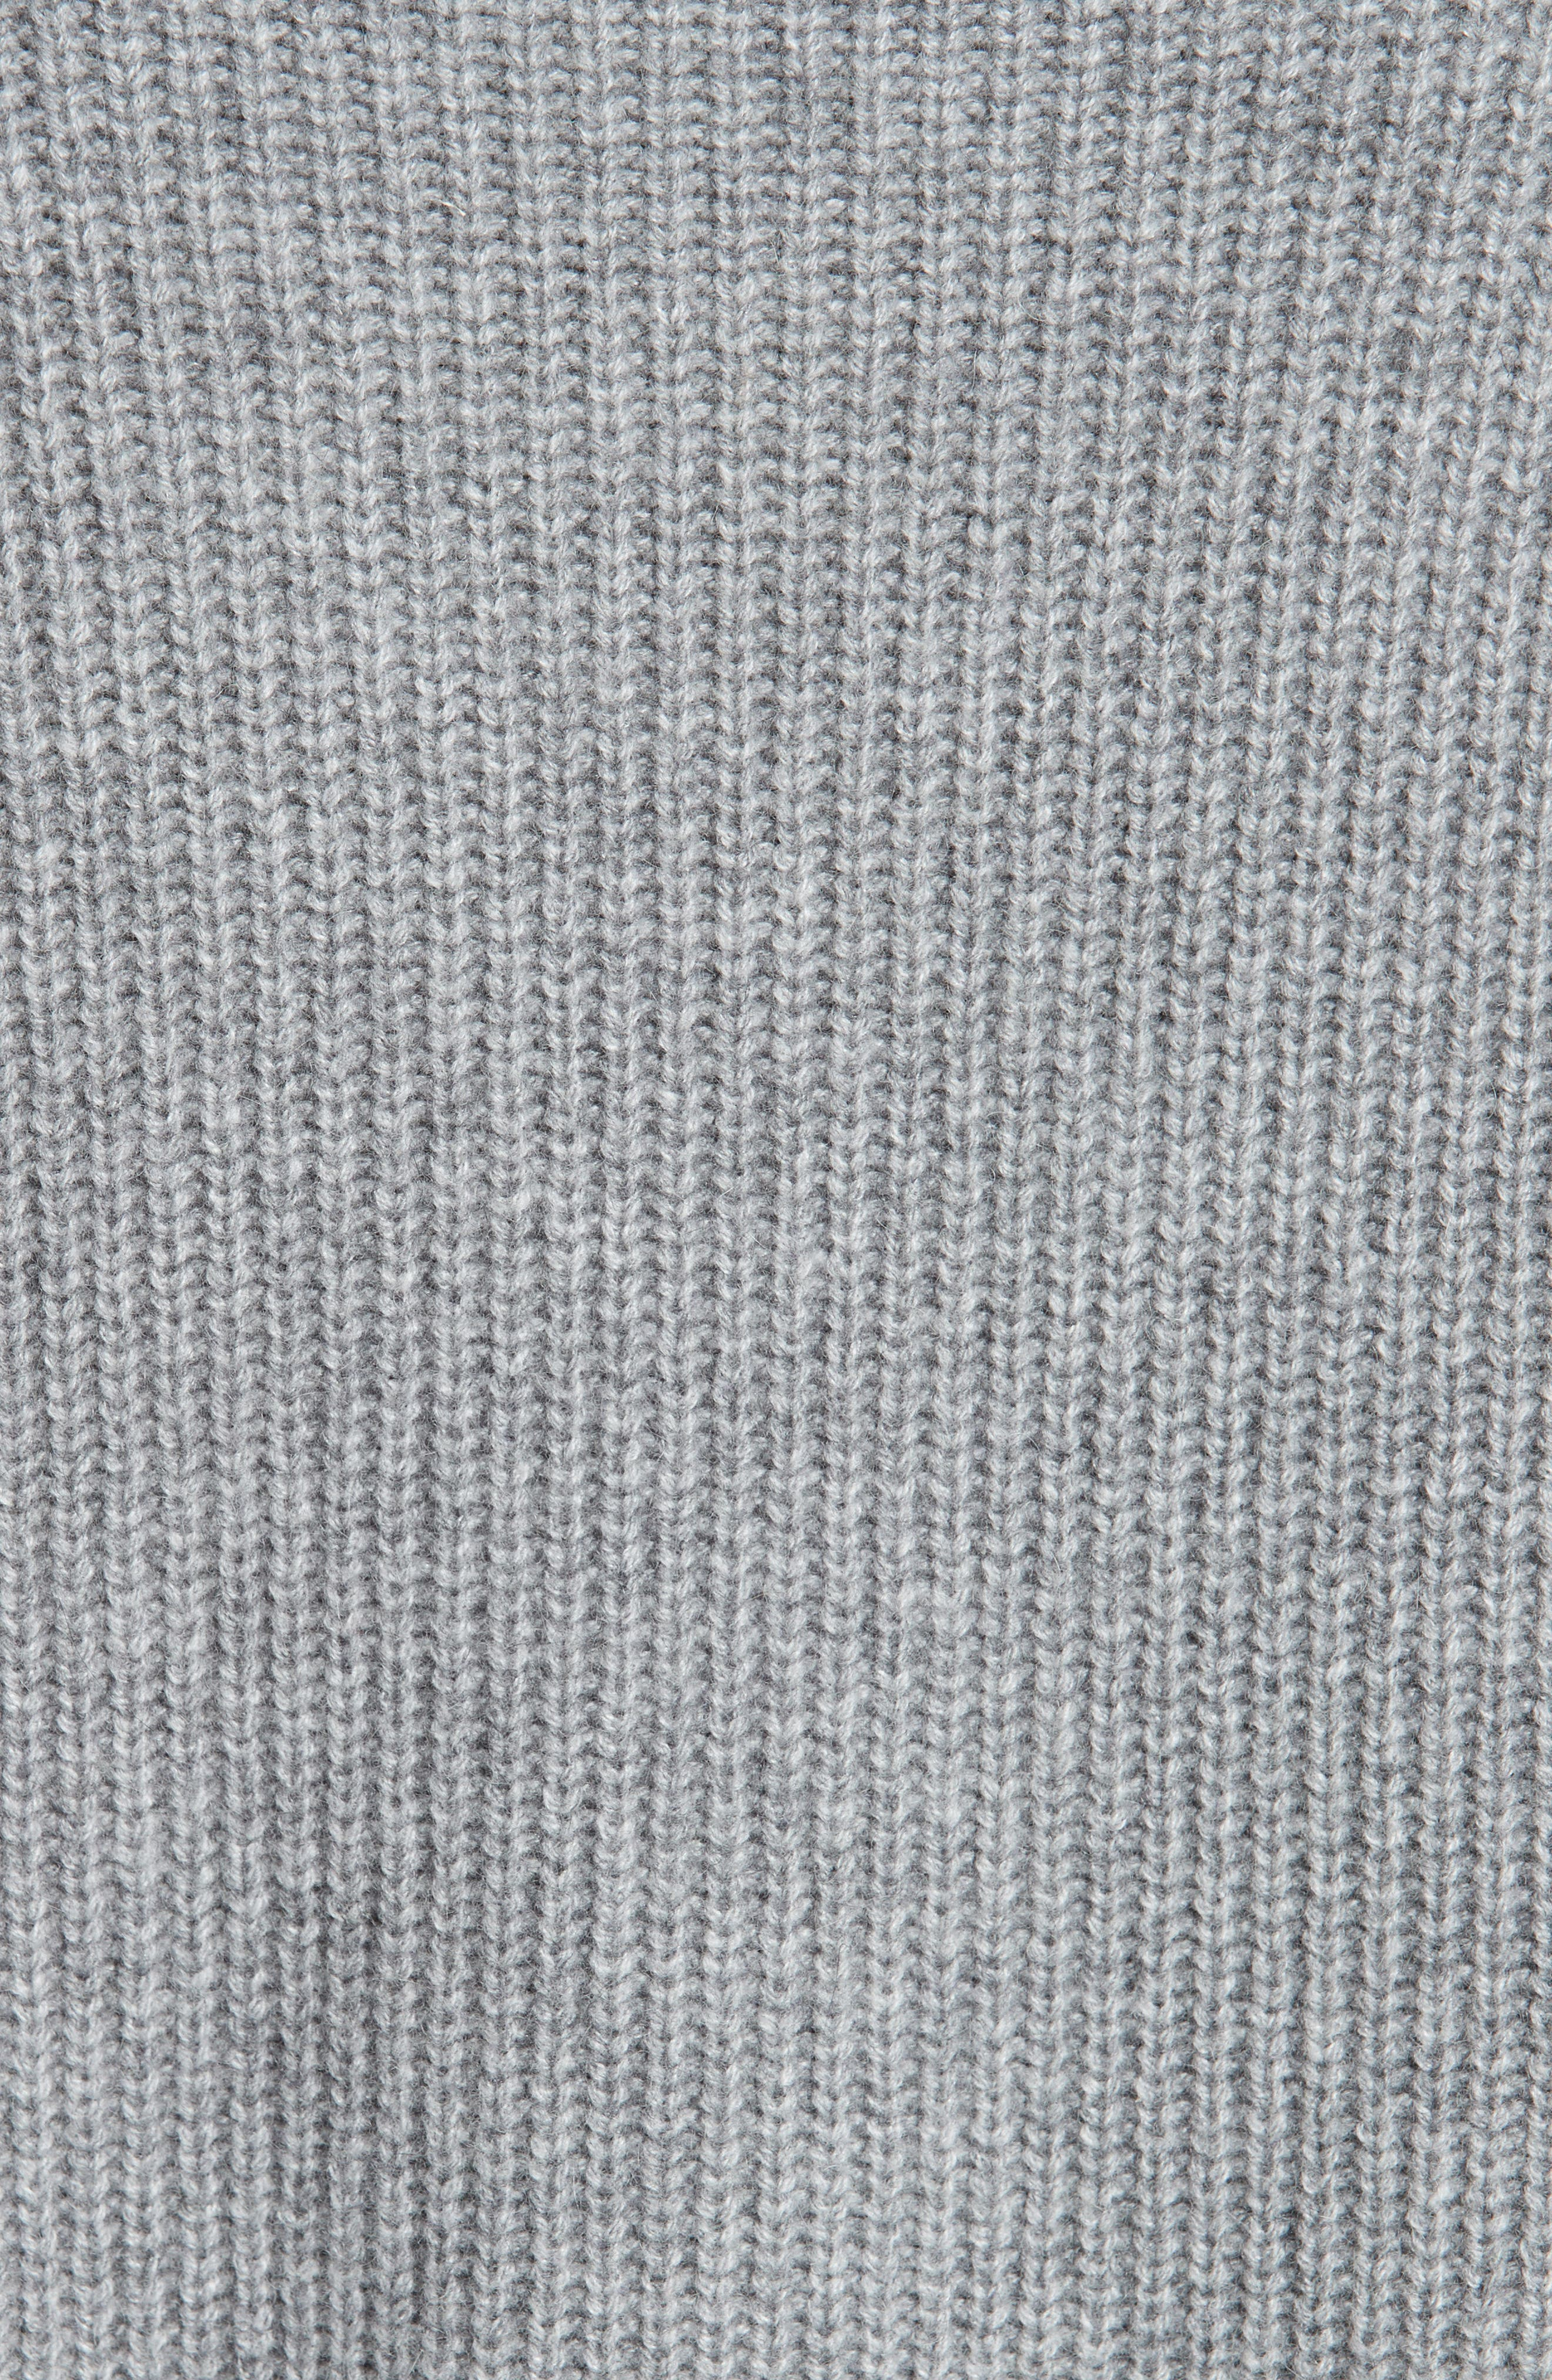 Side Split Merino Wool & Cashmere Blend Sweater,                             Alternate thumbnail 6, color,                             HEATHER GREY